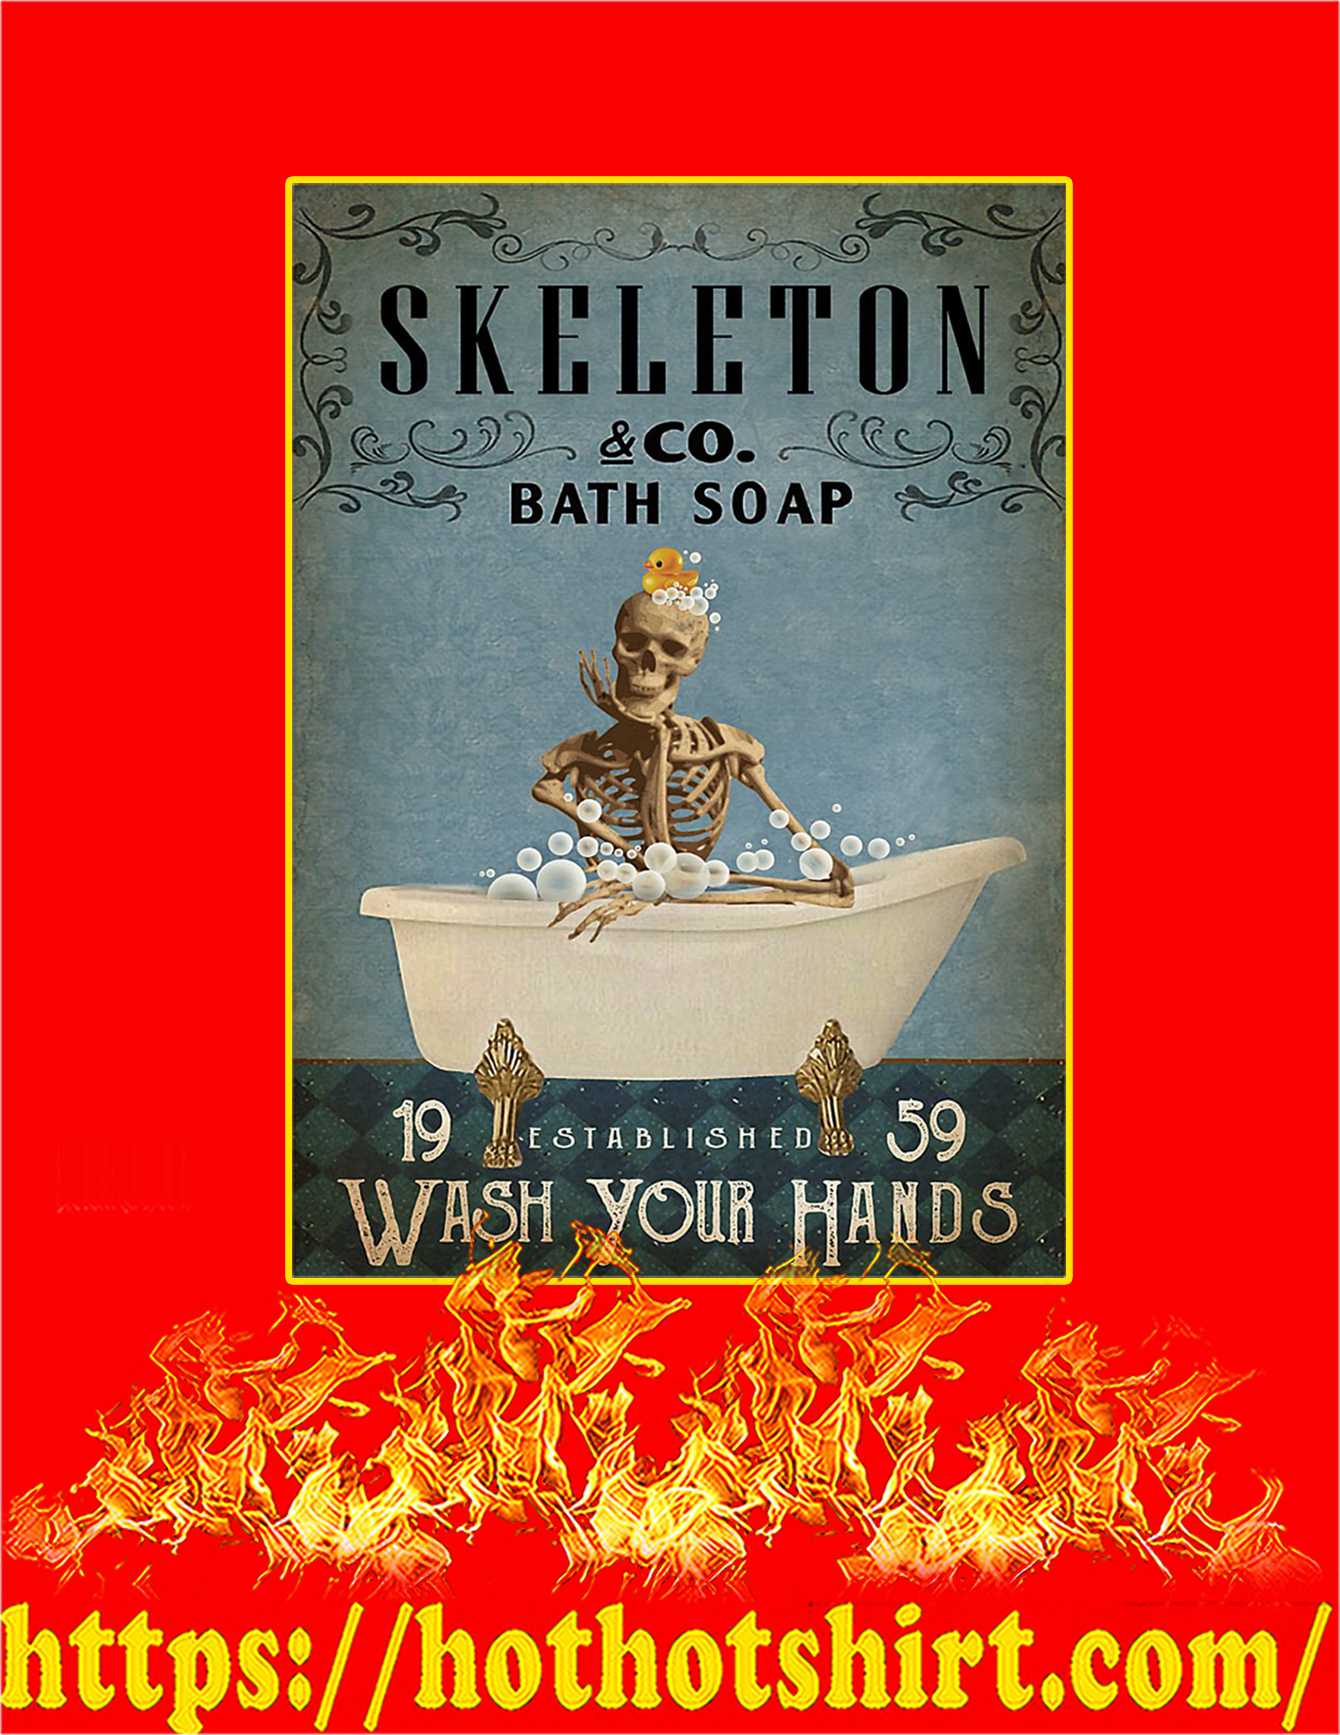 Skeleton Co Bath Soap Wash Your Hands Poster - A3